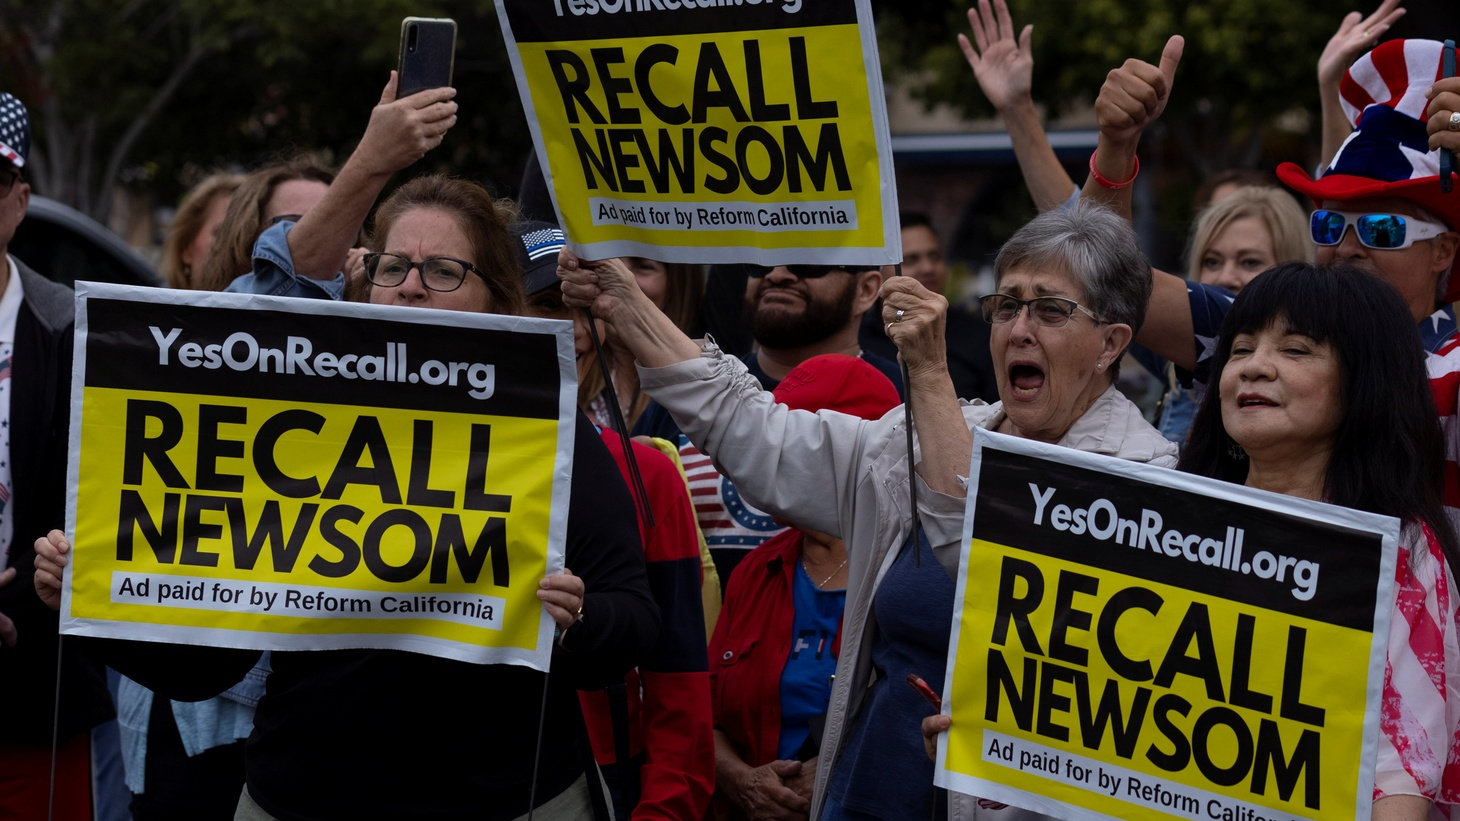 Supporters of the recall campaign of California governor Gavin Newsom prepare for the upcoming recall election with a rally and information session in Carlsbad, California, U.S., June 30, 2021.